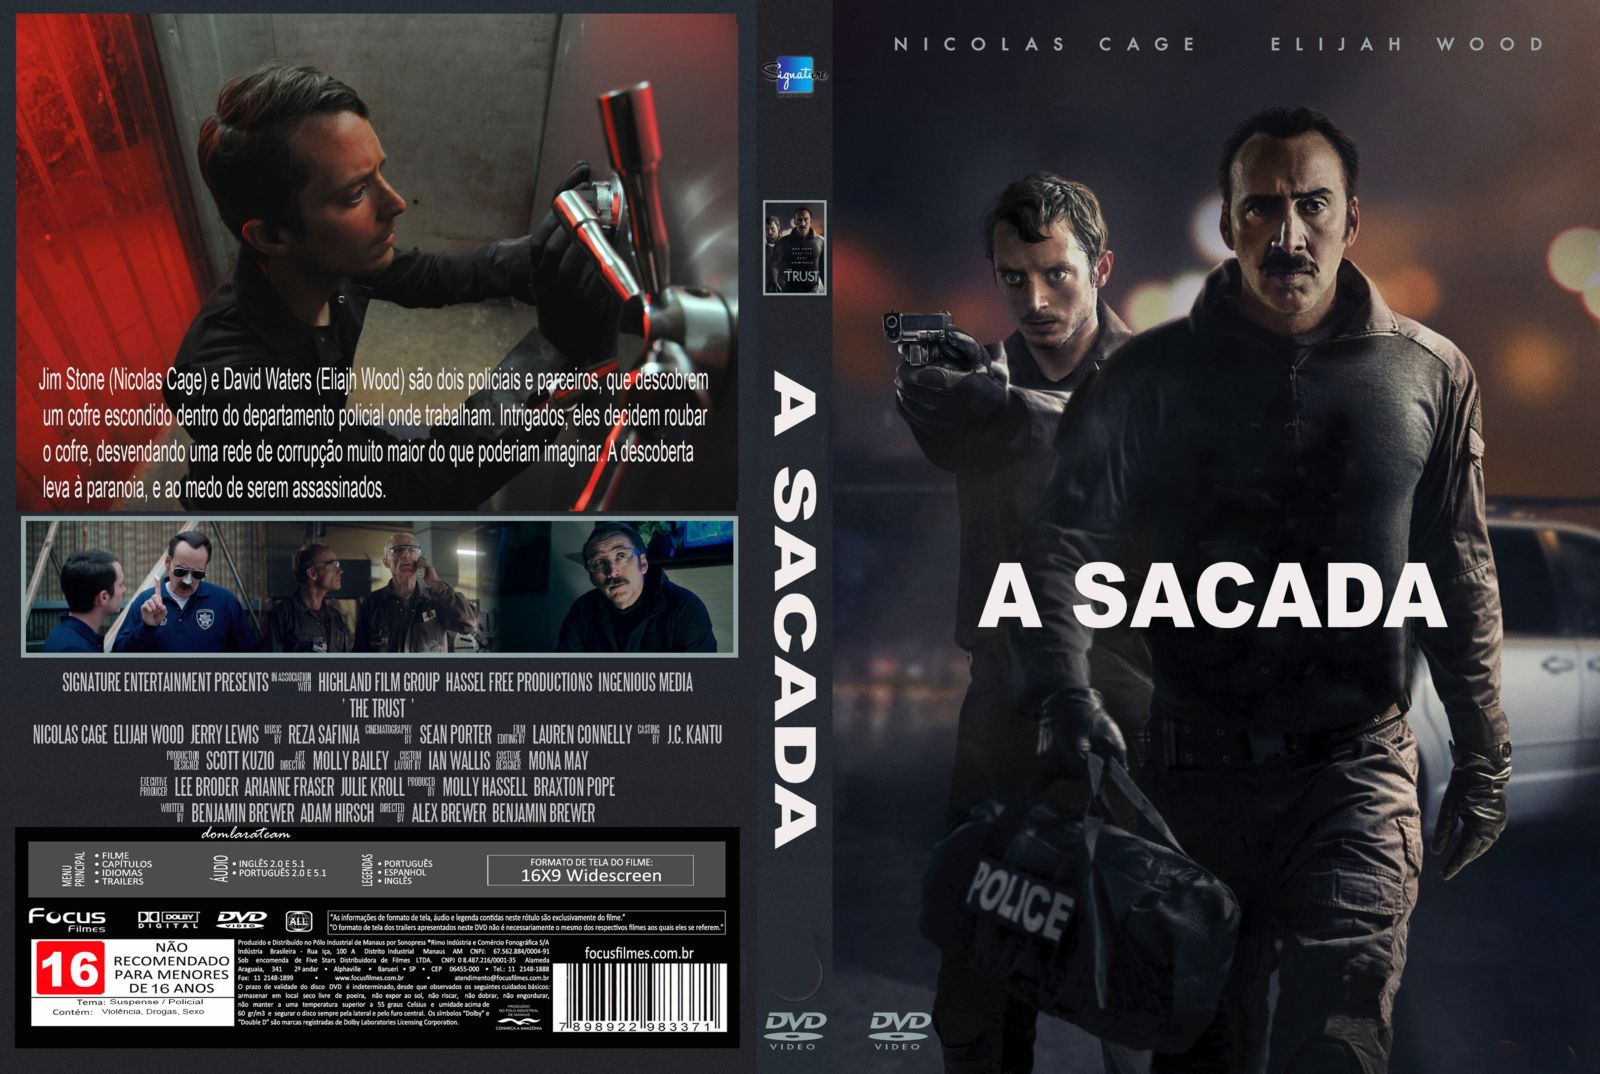 Download A Sacada DVDRip Dual Áudio Download A Sacada DVDRip Dual Áudio A 2BSacada